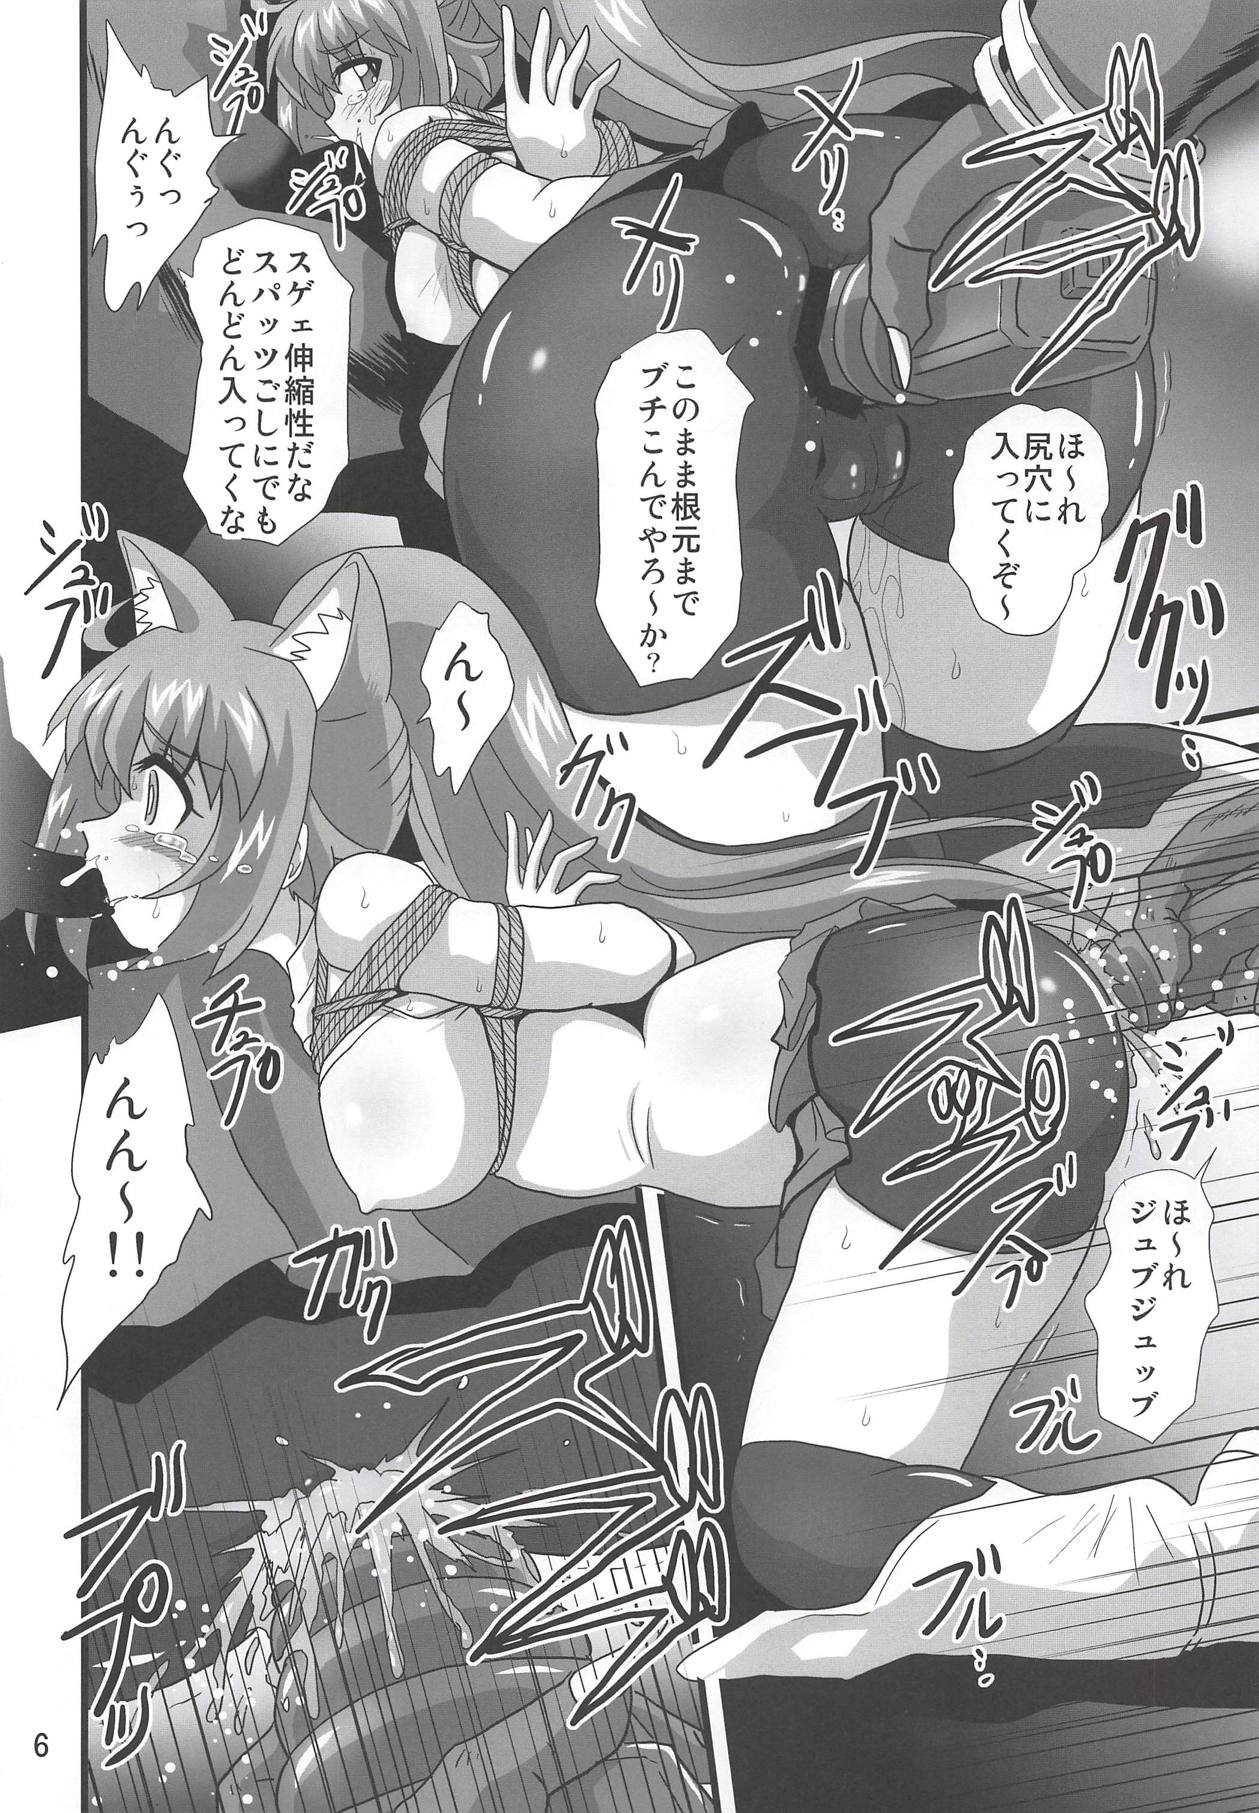 (COMIC1☆14) [Thirty Saver Street (Sawara Kazumitsu, Maki Hideto)] Diver's High 2 (Gundam Build Divers) page 5